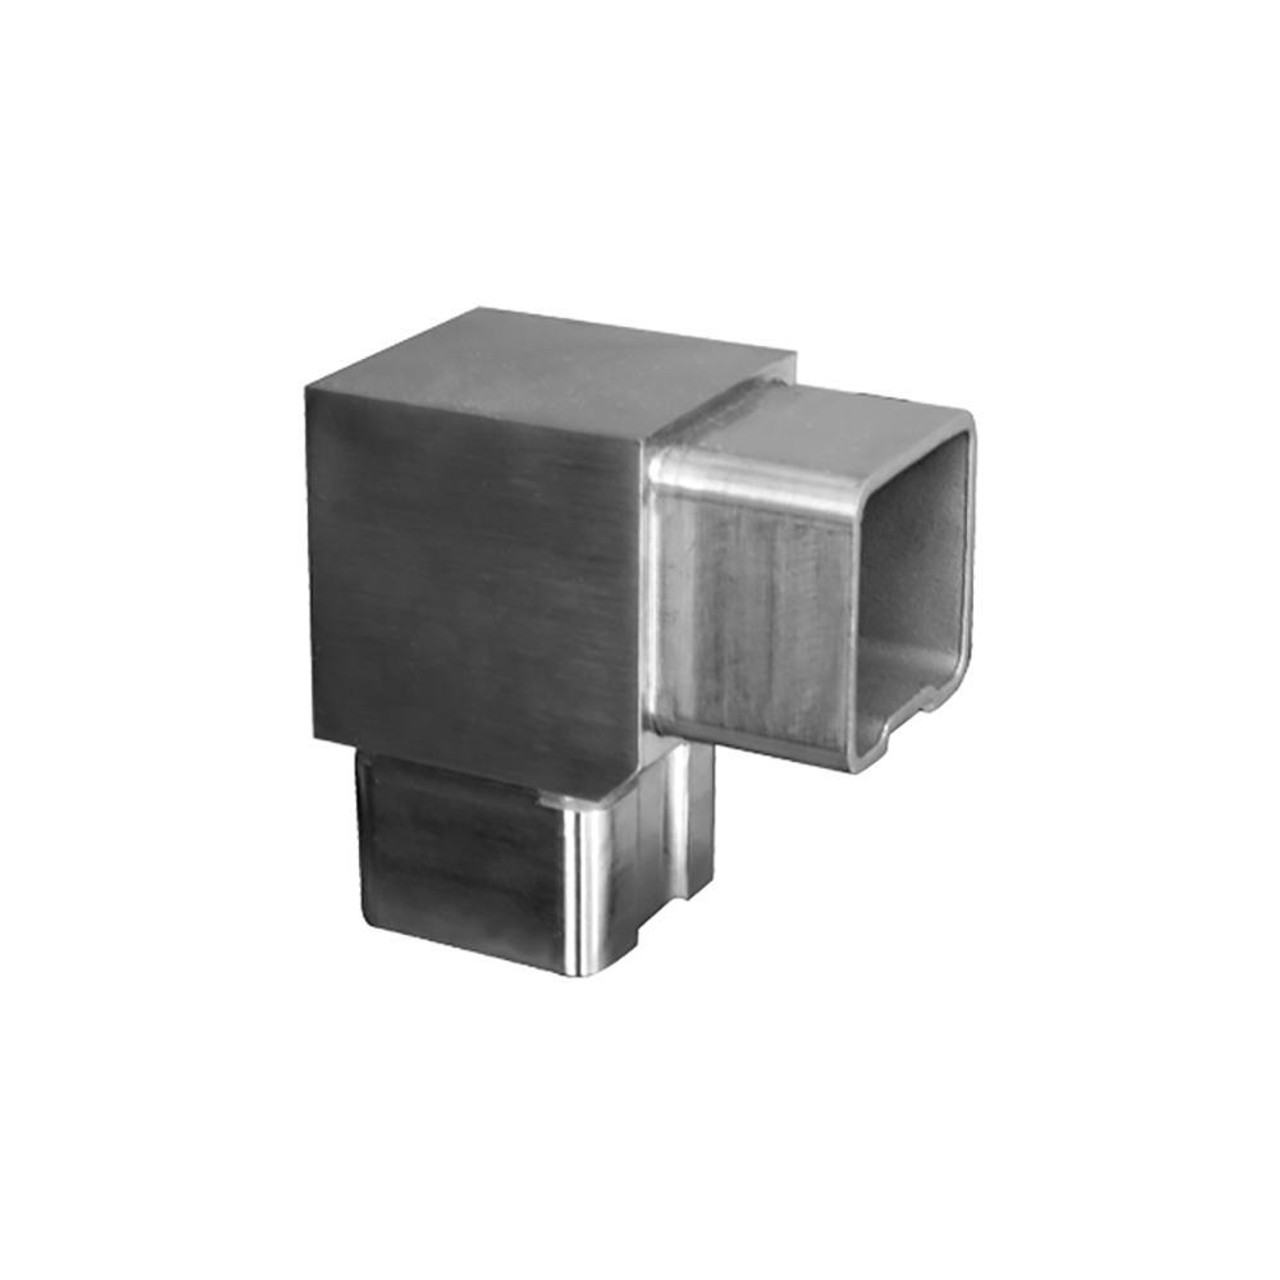 90 Degree Fitting for Square Rail – 40 x 40 x 2 mm (AX20.008.110.A.SP)